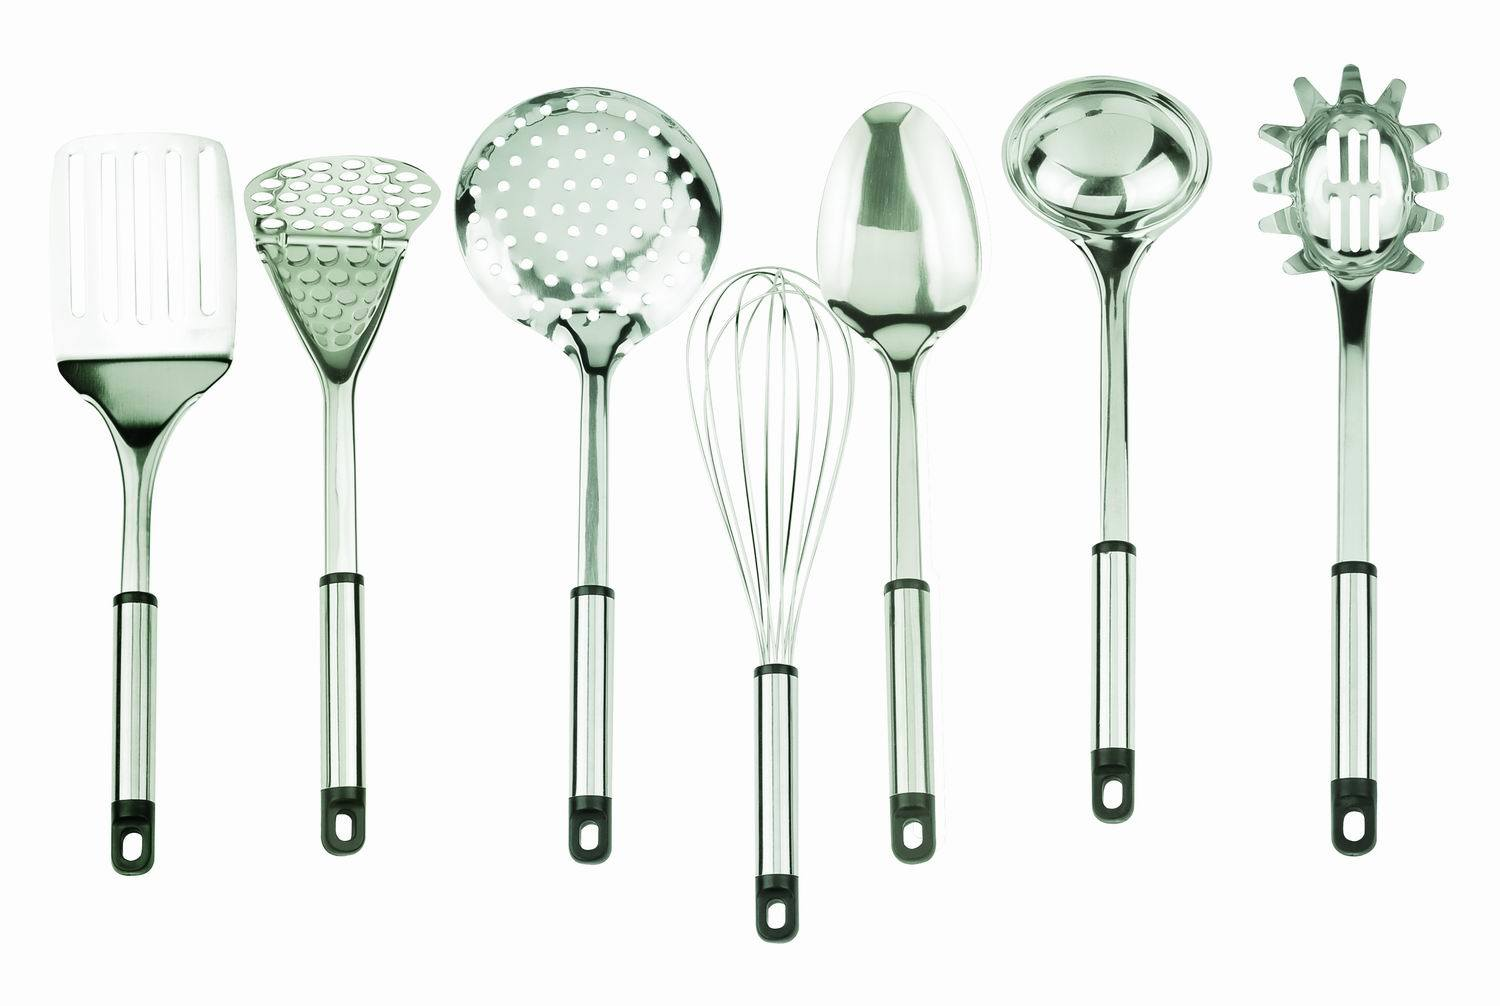 Kitchen equipment and their uses - Kitchen Utensils List On Cooking Utensils Syu018 China Utensils Kitchen Tool